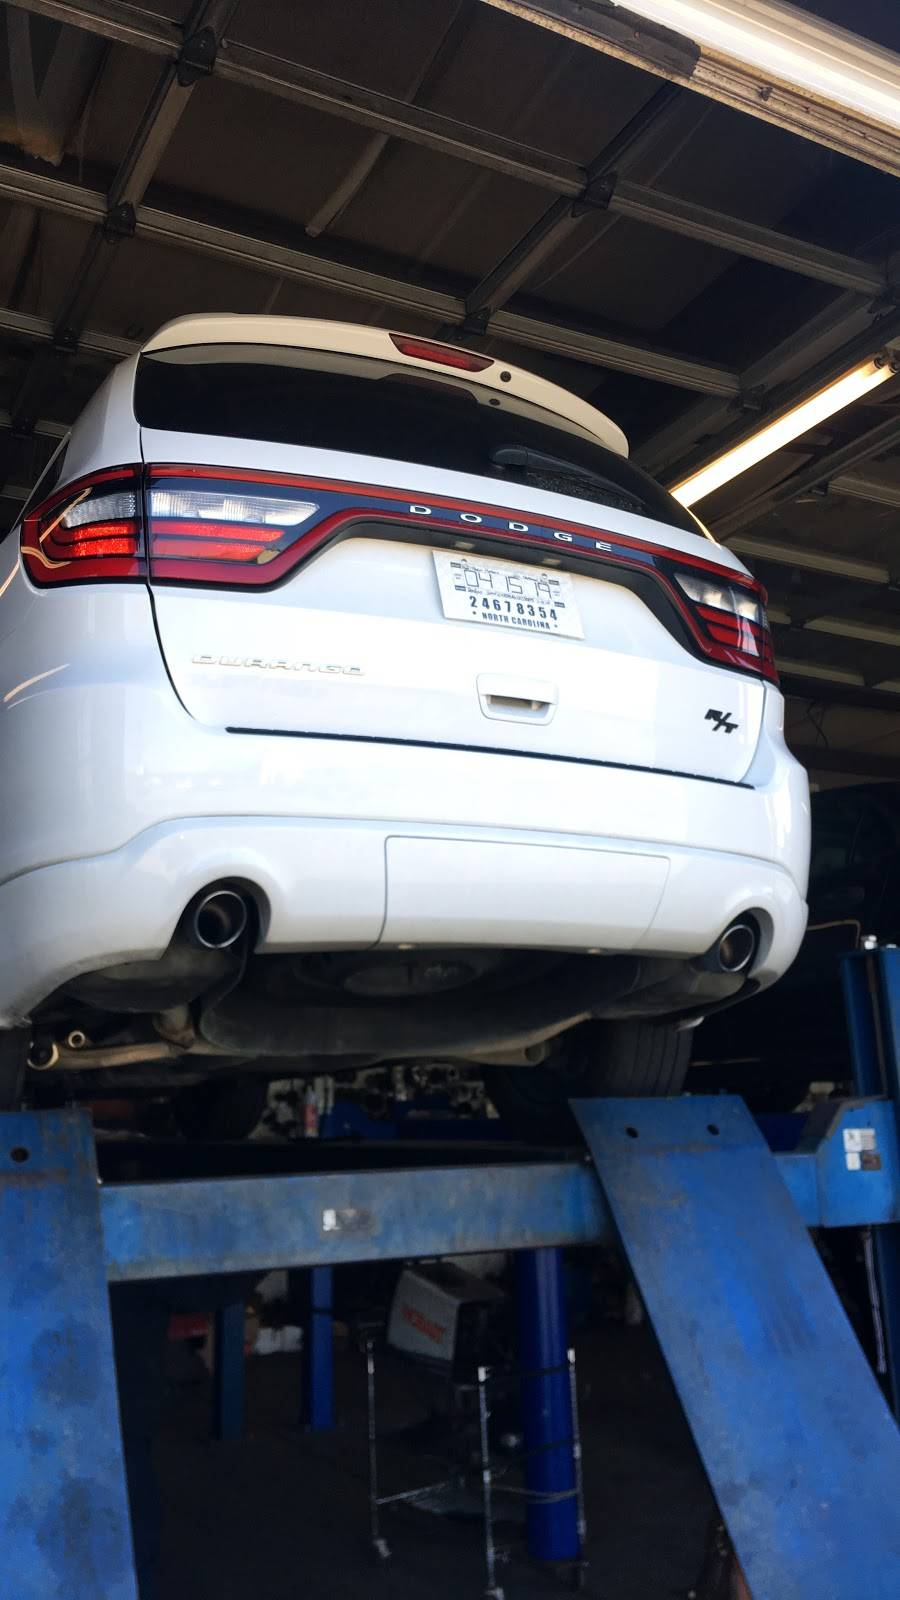 Scotties Muffler Shop - car repair  | Photo 8 of 10 | Address: 4148 Patterson Ave, Winston-Salem, NC 27105, USA | Phone: (336) 377-9800